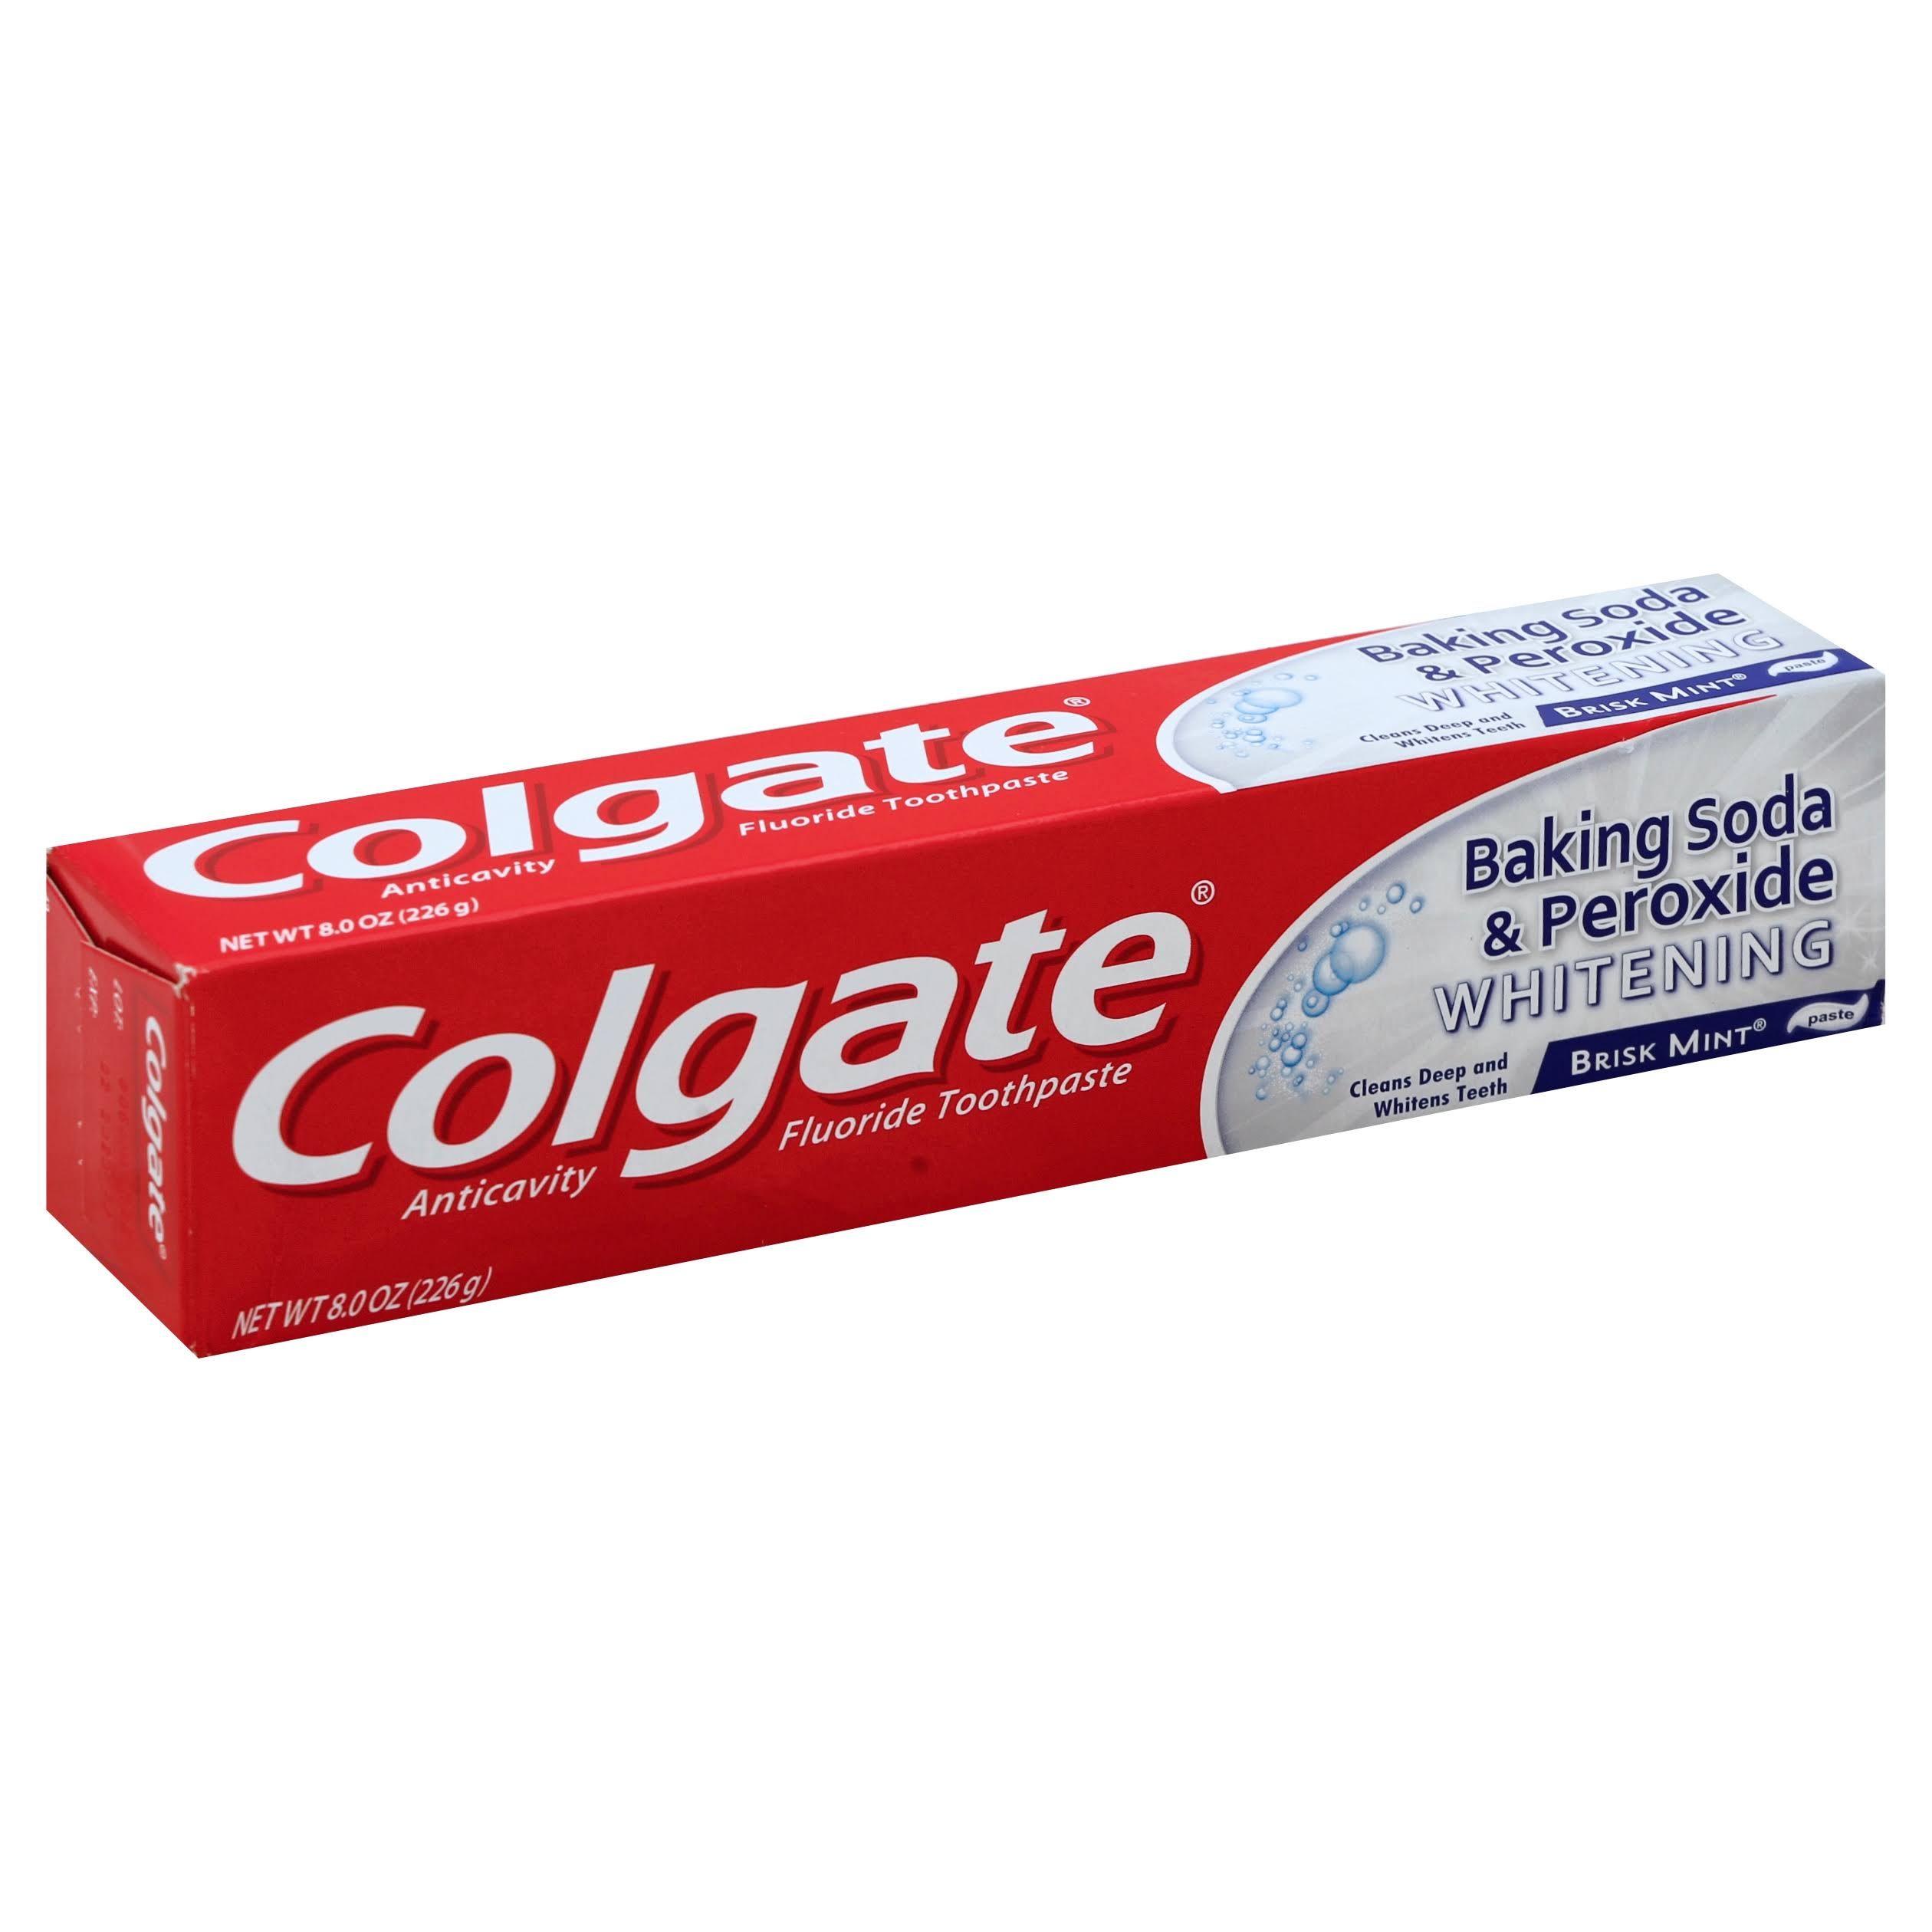 Colgate Baking Soda and Peroxide Whitening Bubbles Toothpaste - 8oz